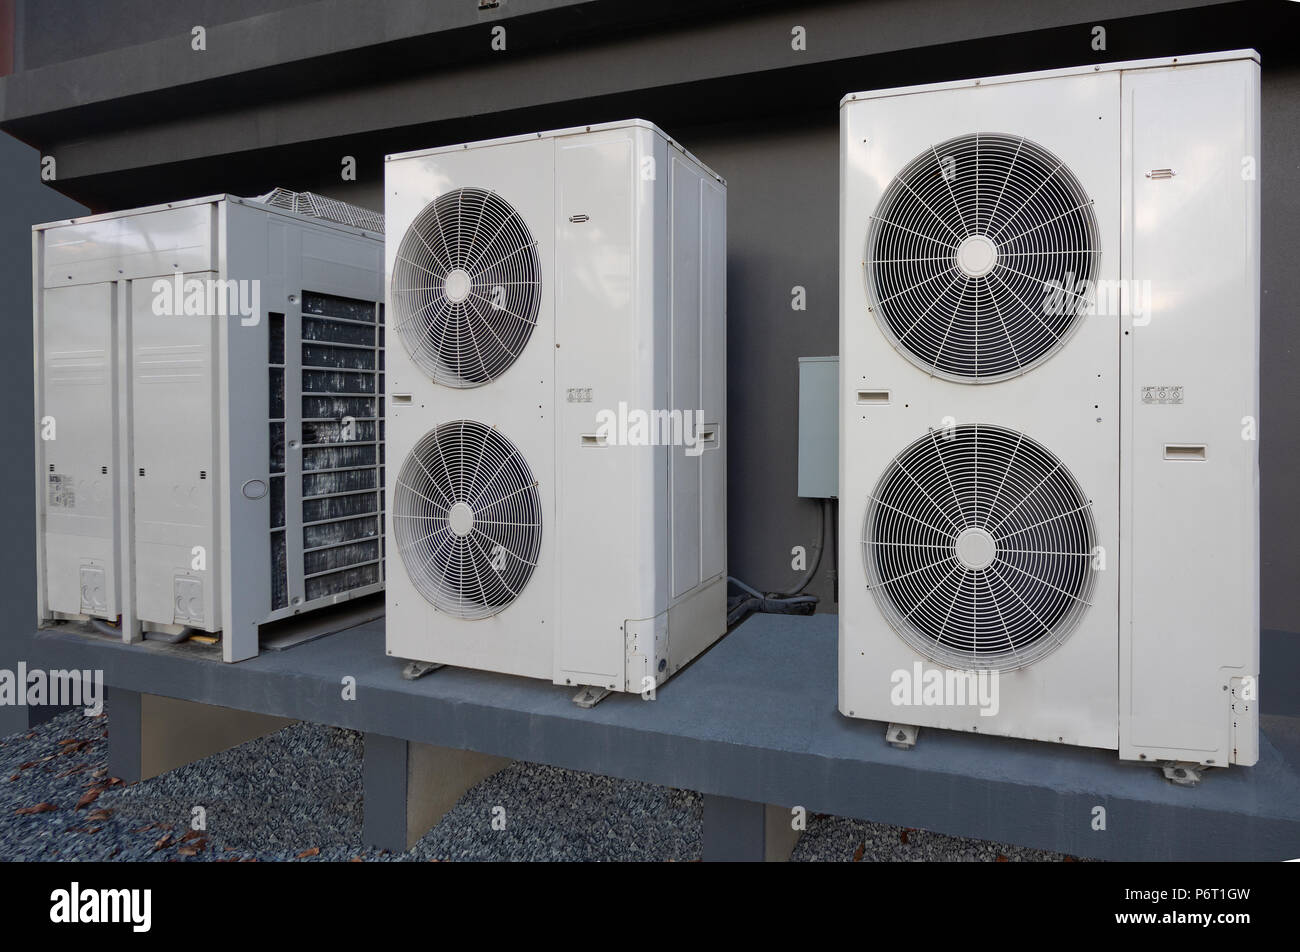 Air conditioning and heating units outside an apartment complex - Stock Image